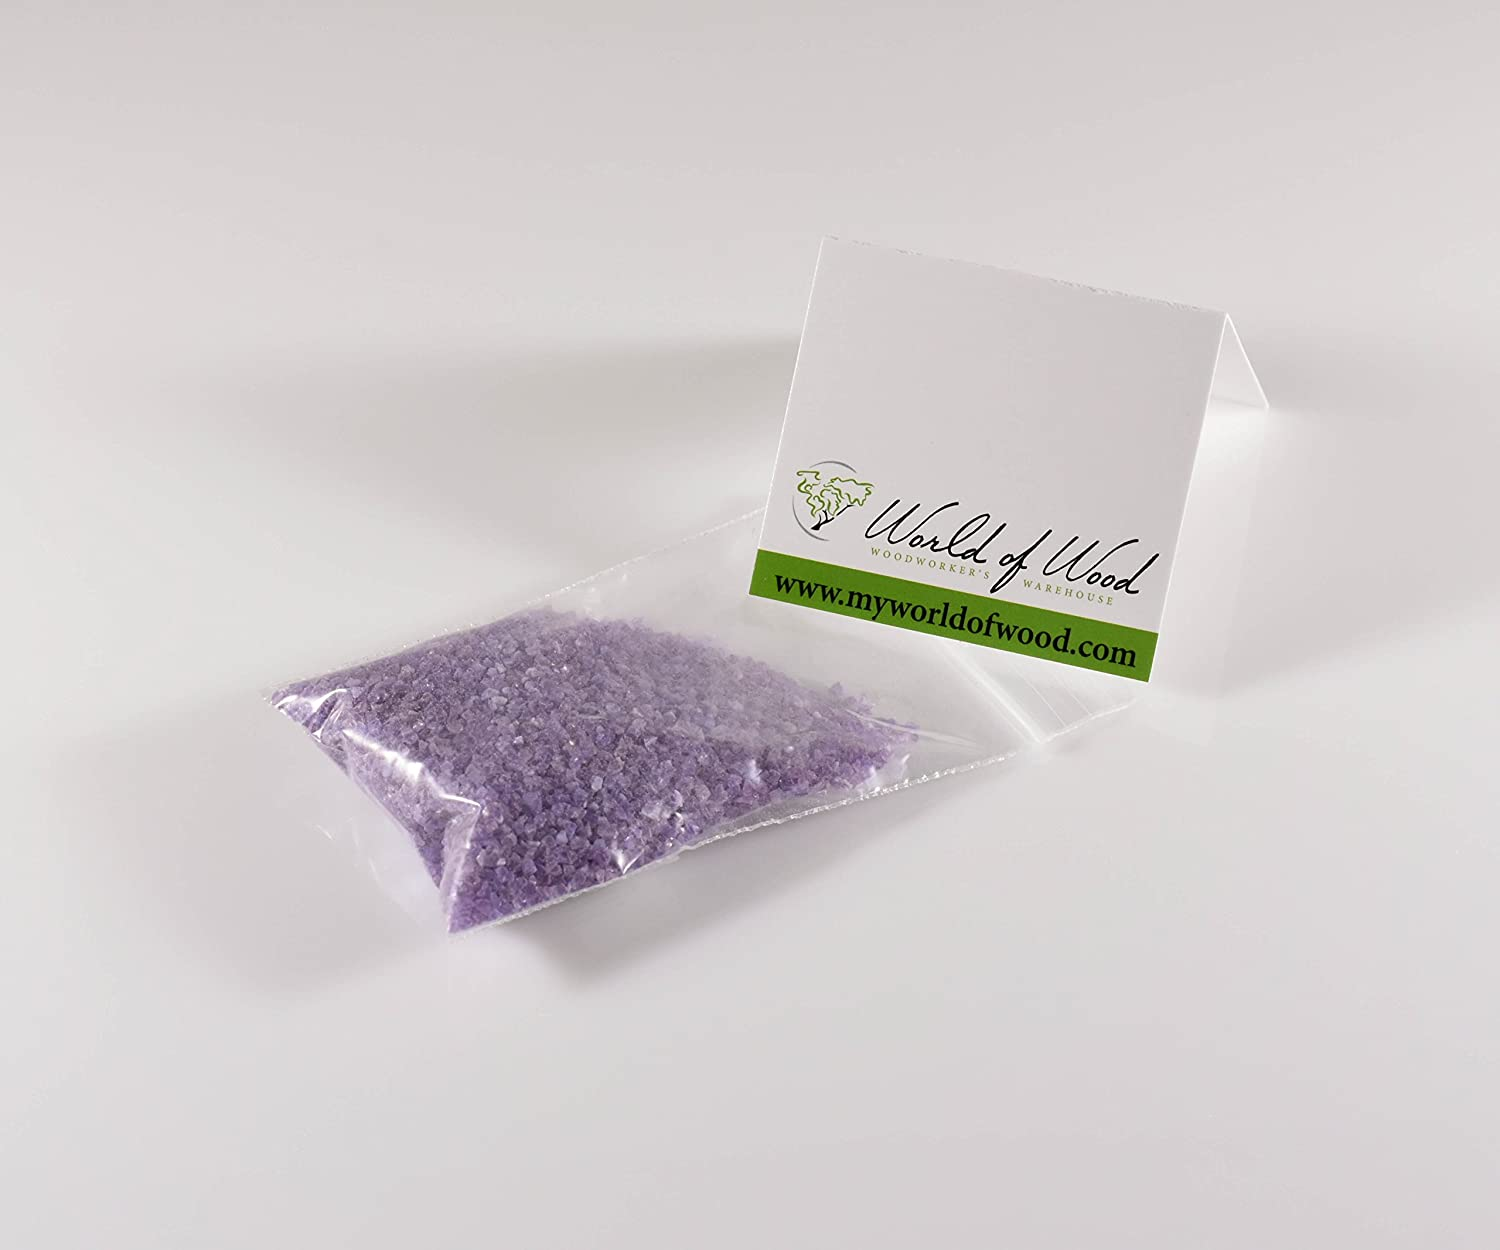 Coarse Jewelry 1 LB and Art Natural Genuine Amethyst Crushed Inlay Stone Perfect for Wood Inlay